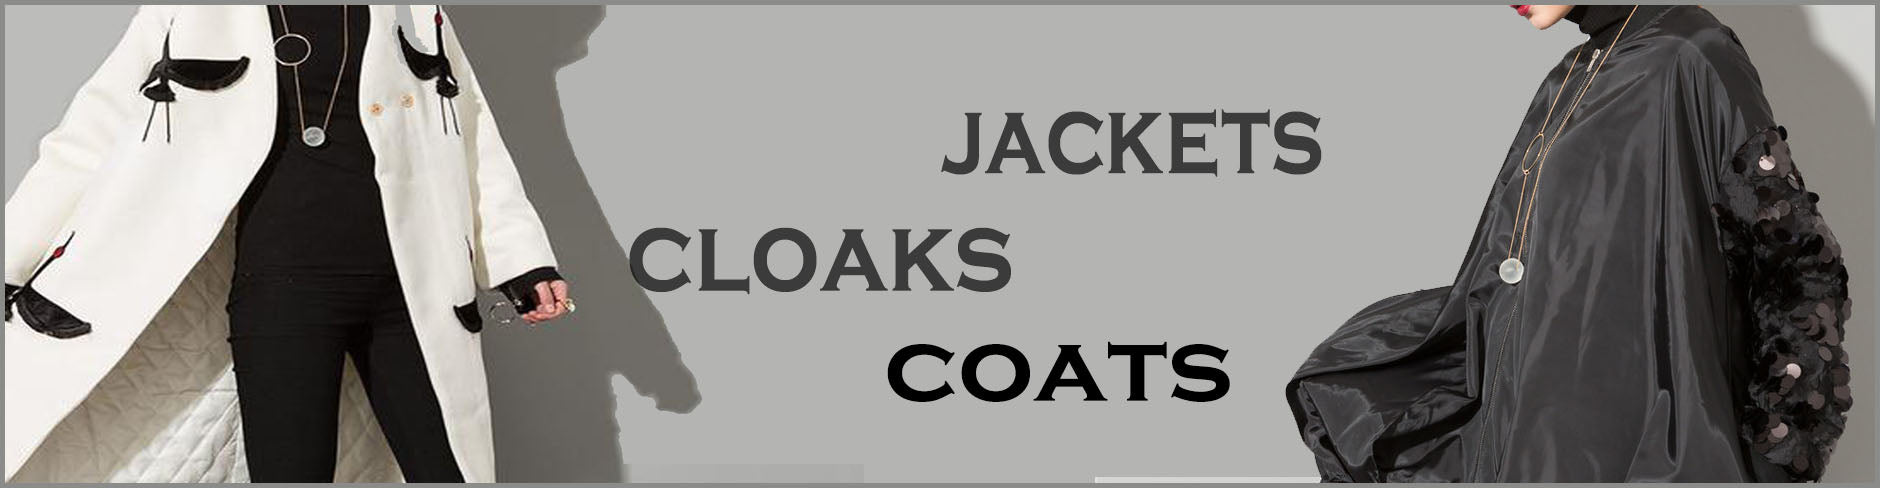 Arista Gems | Jackets, Cloaks And Coats